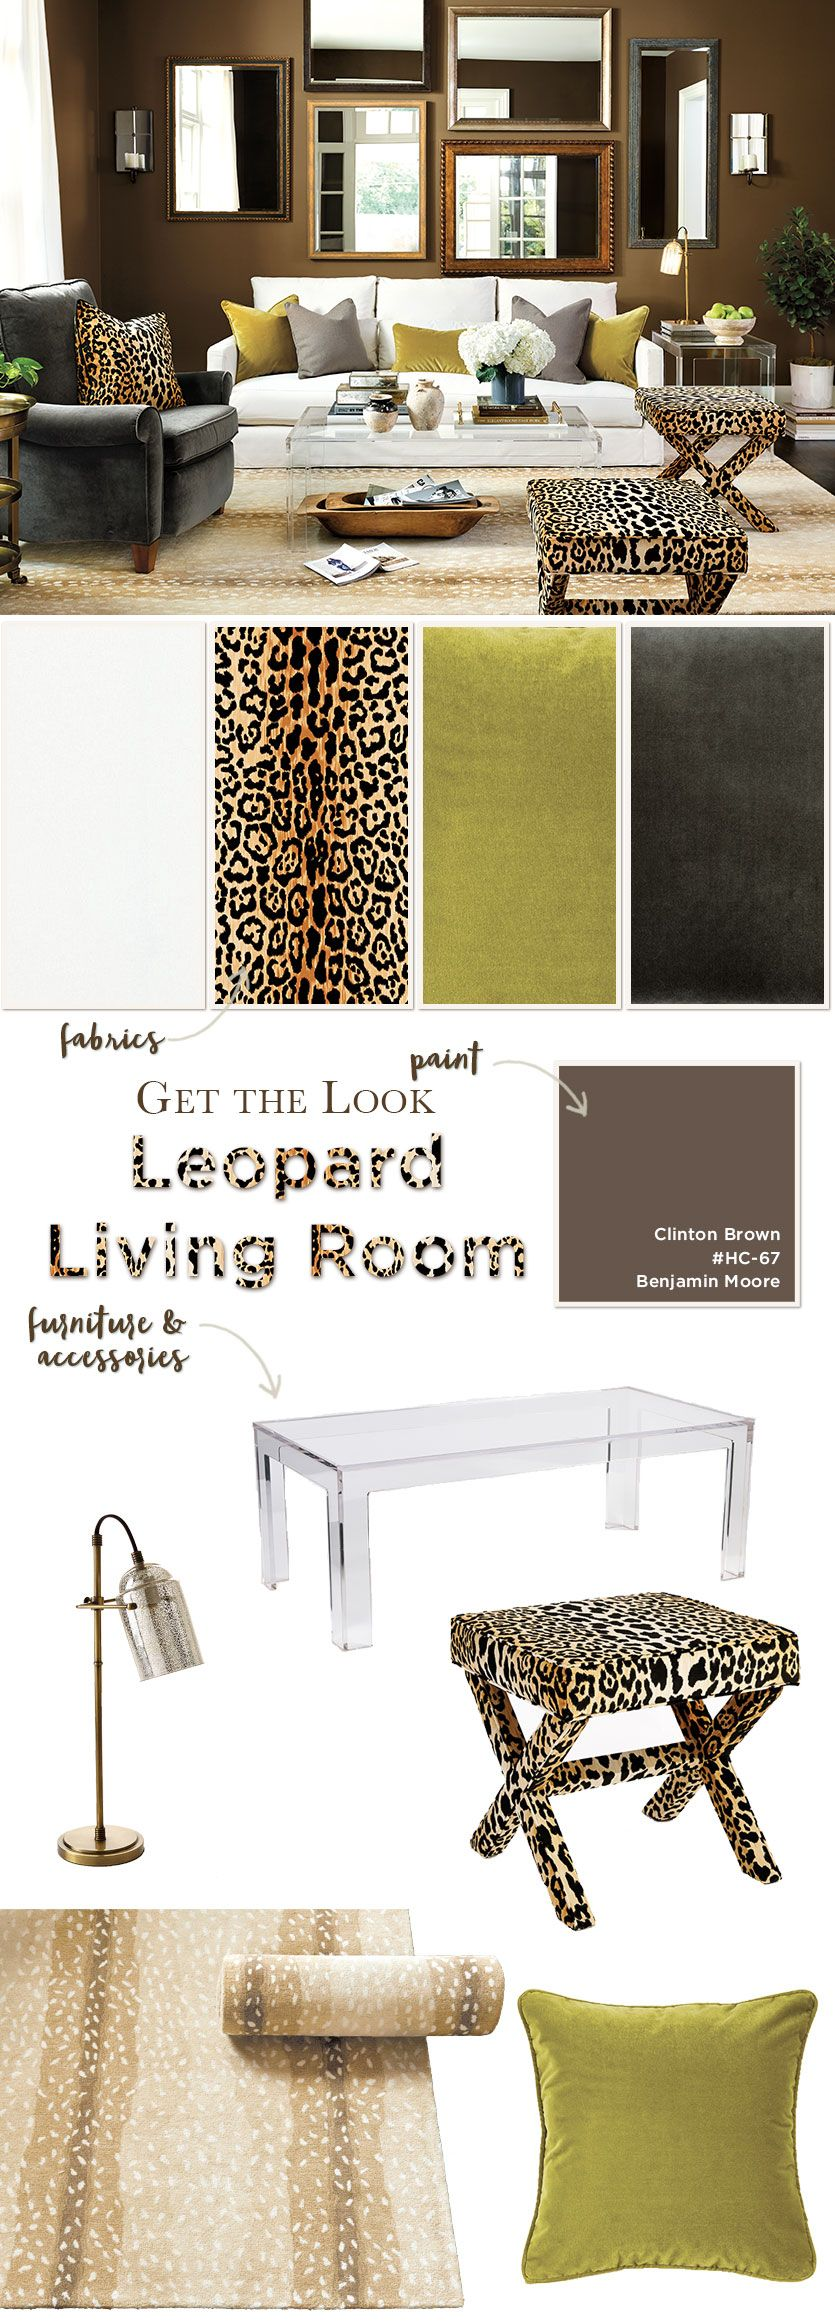 Get the Look: Chic, Leopard Living Room | Decorative ...